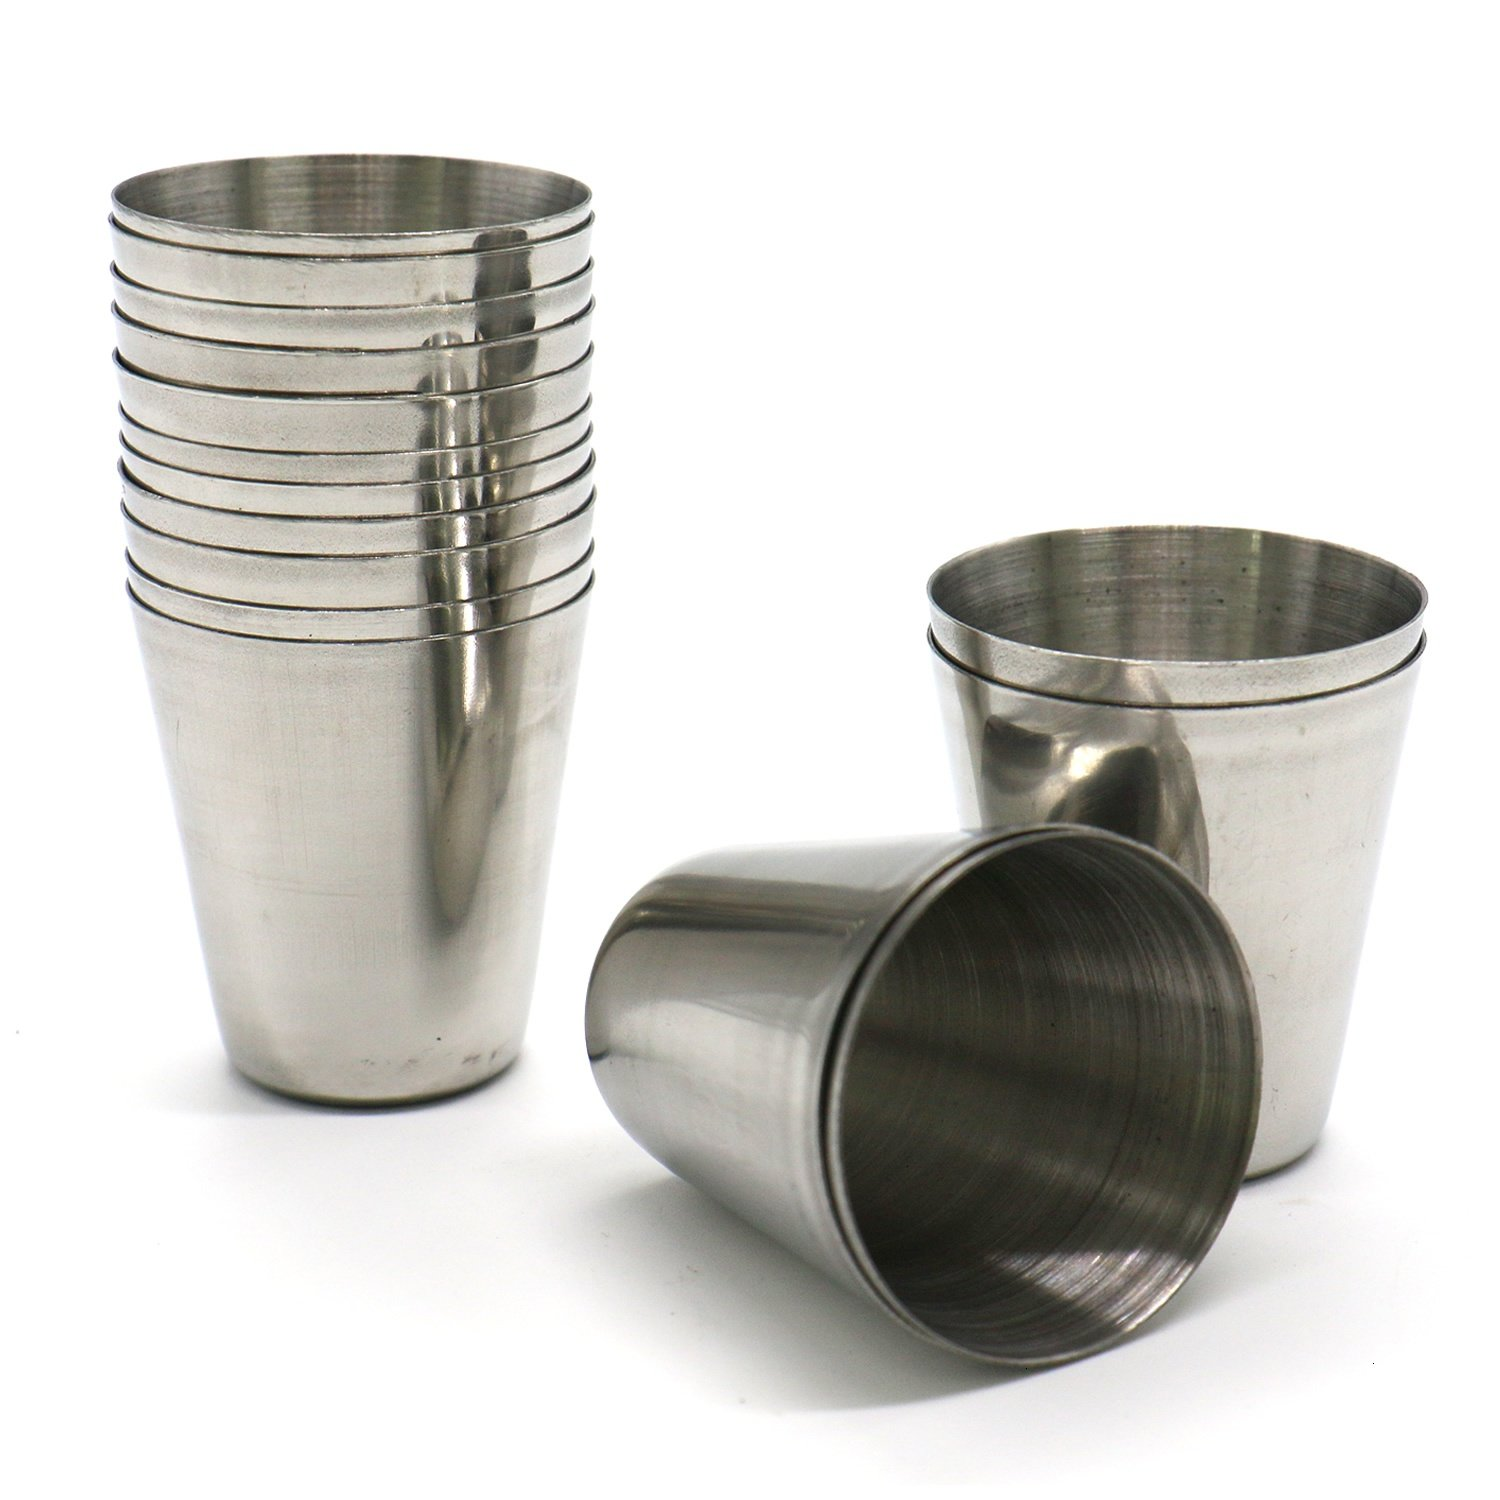 HUELE Set of 15pcs Stainless Steel Shot Glasses Drinking Vessel Drinking Cup Barware (1 Ounce)